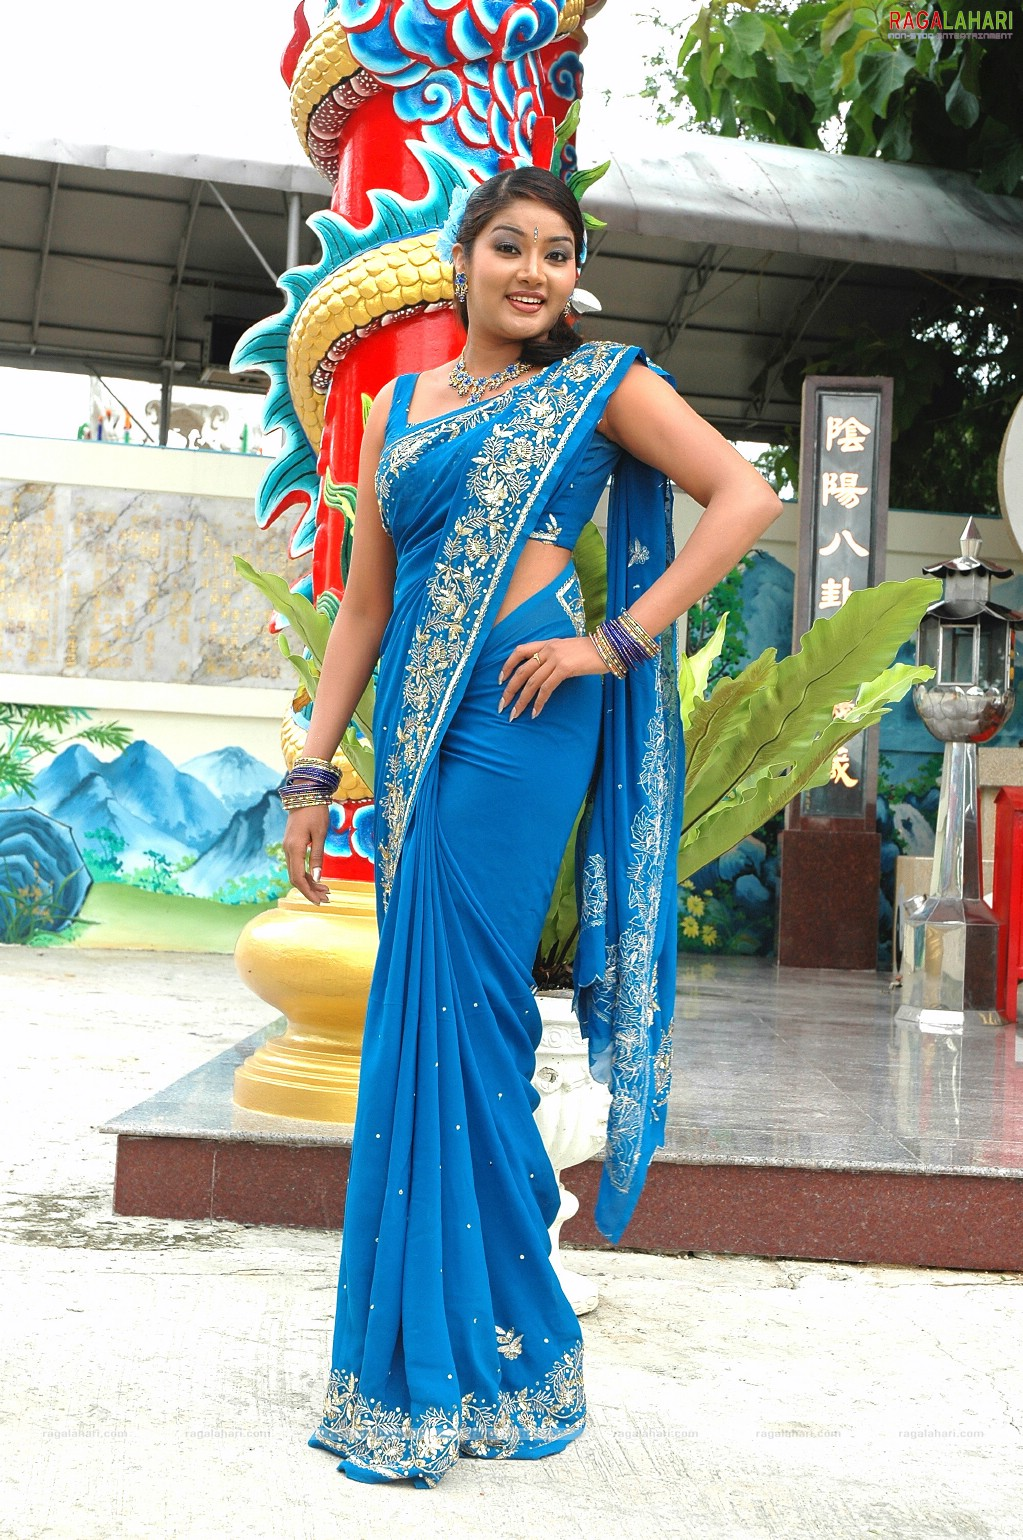 Special For All Masala Actress Lakshana Hot Images, Sexy -9379